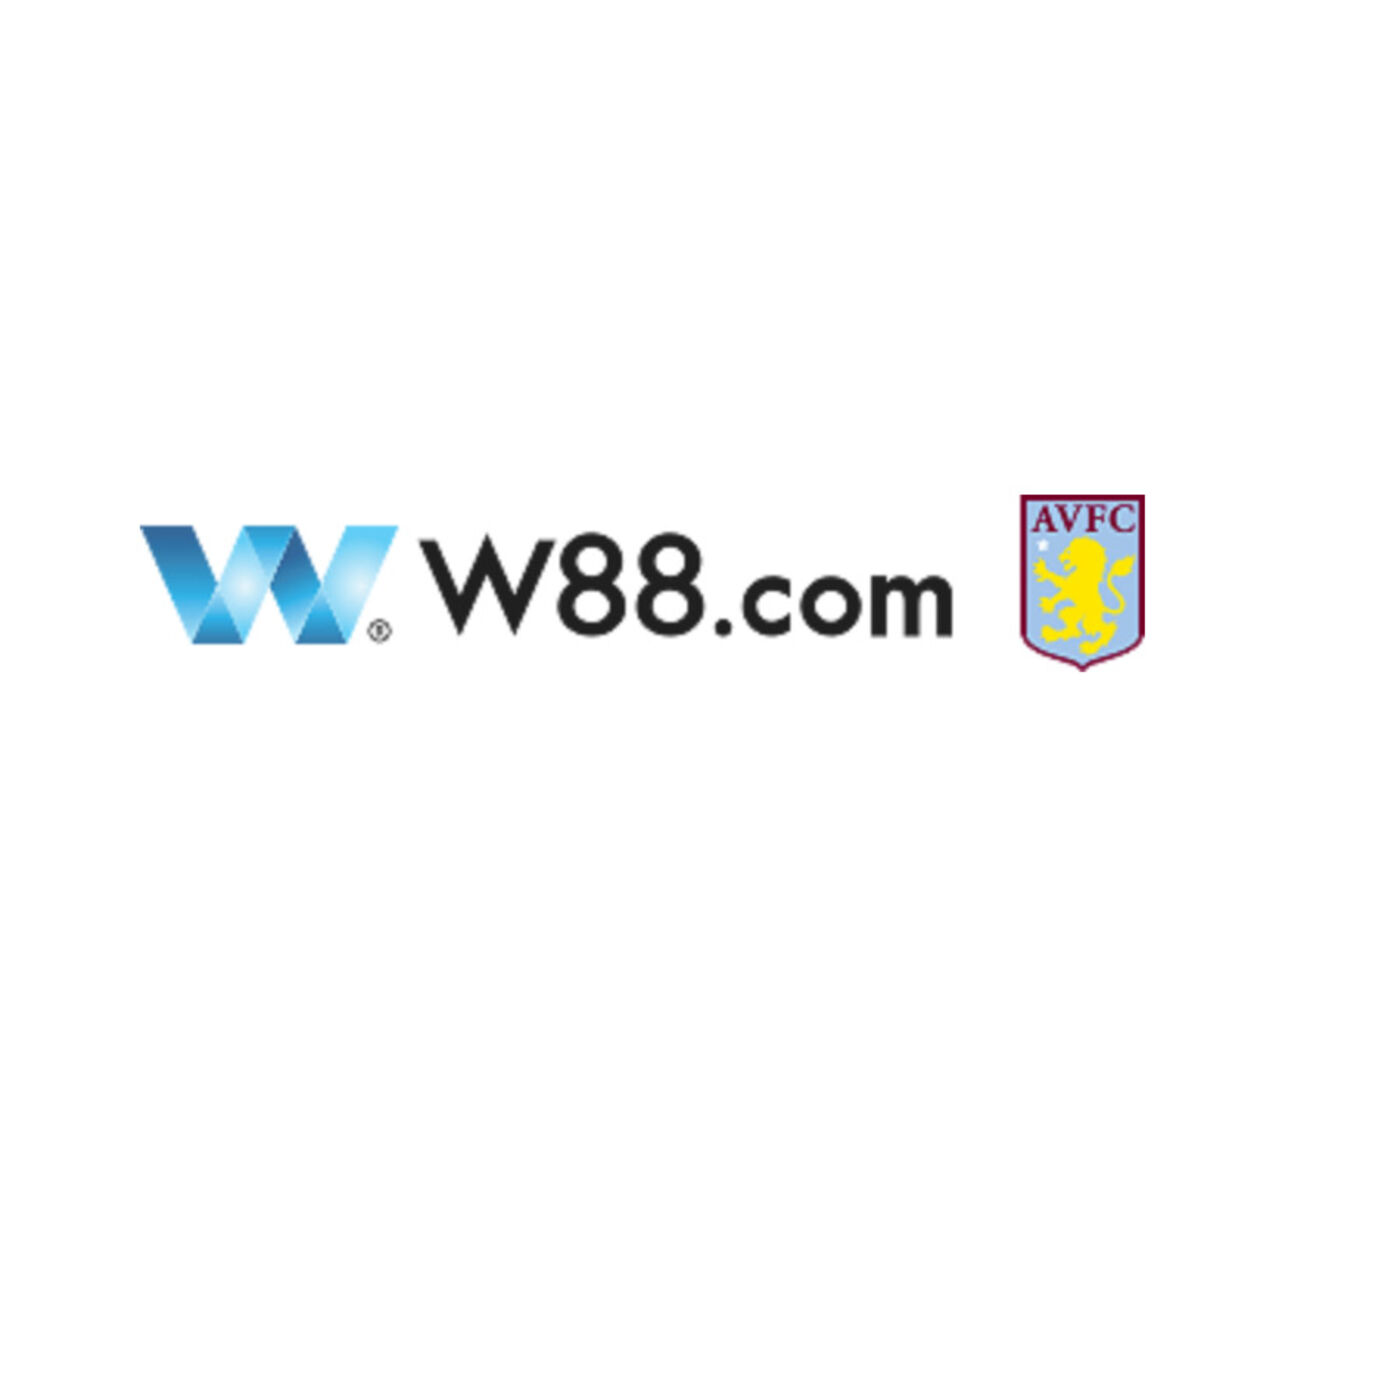 W88 football betting guide online